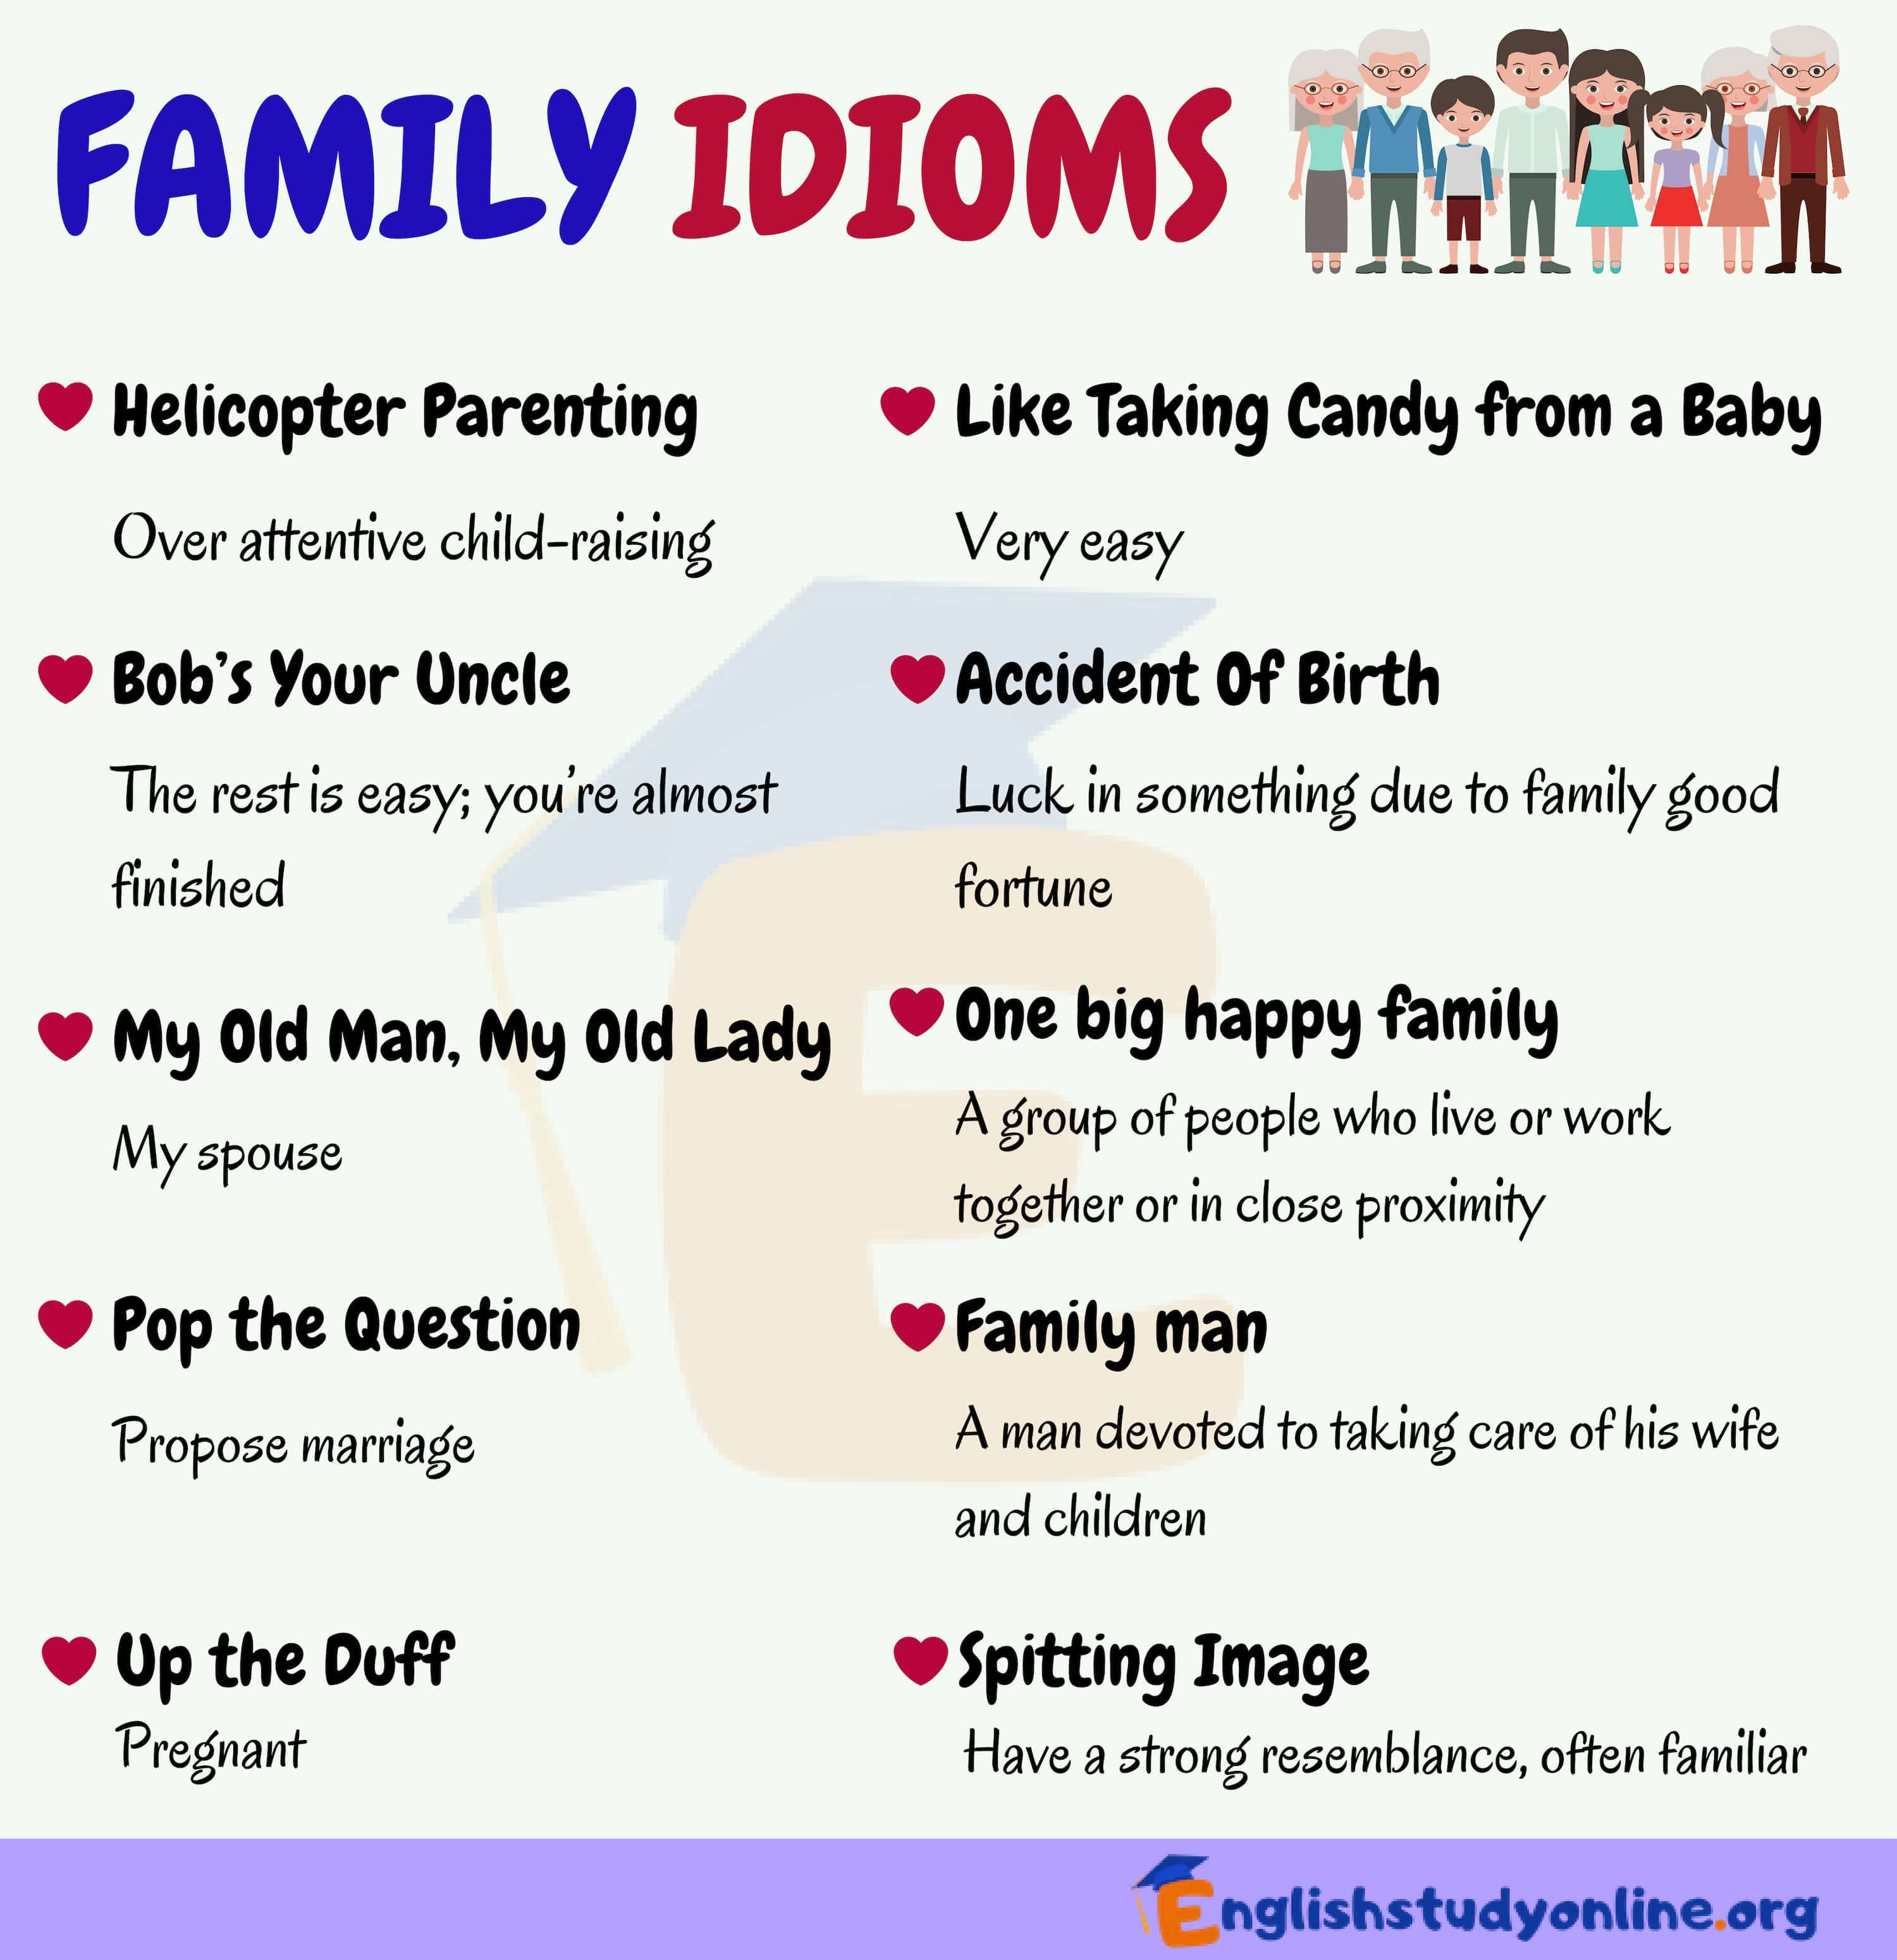 Family Idioms List of 10 Useful Idioms about Family in